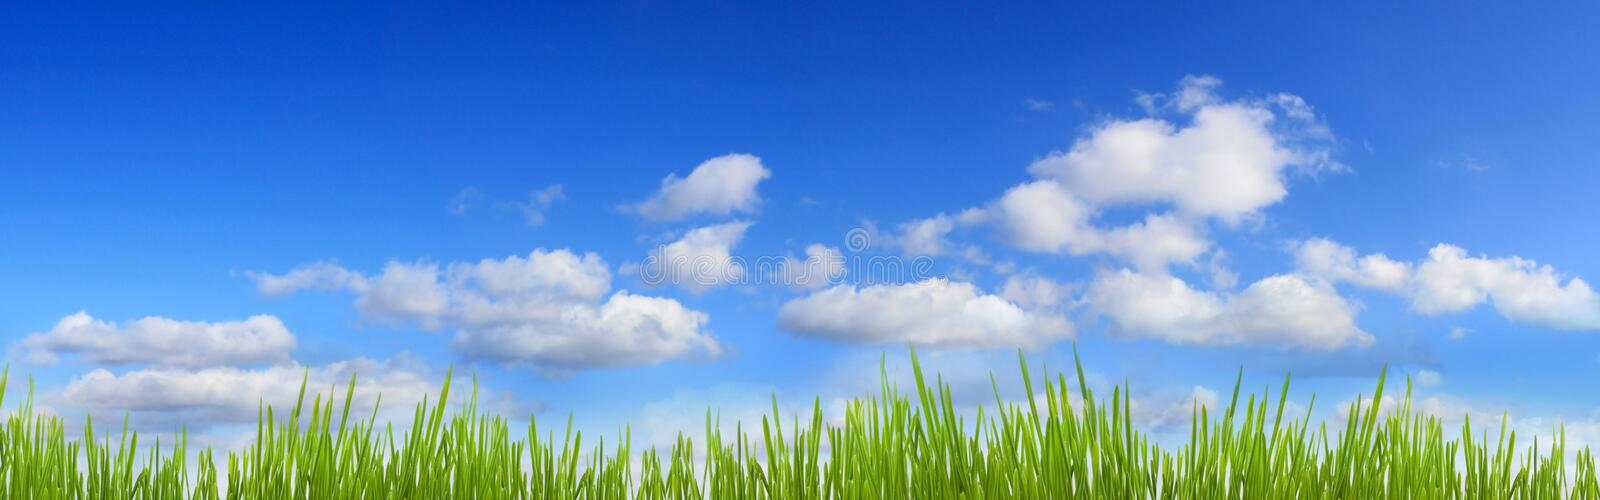 Grass And Sky Banner Royalty Free Stock Photo